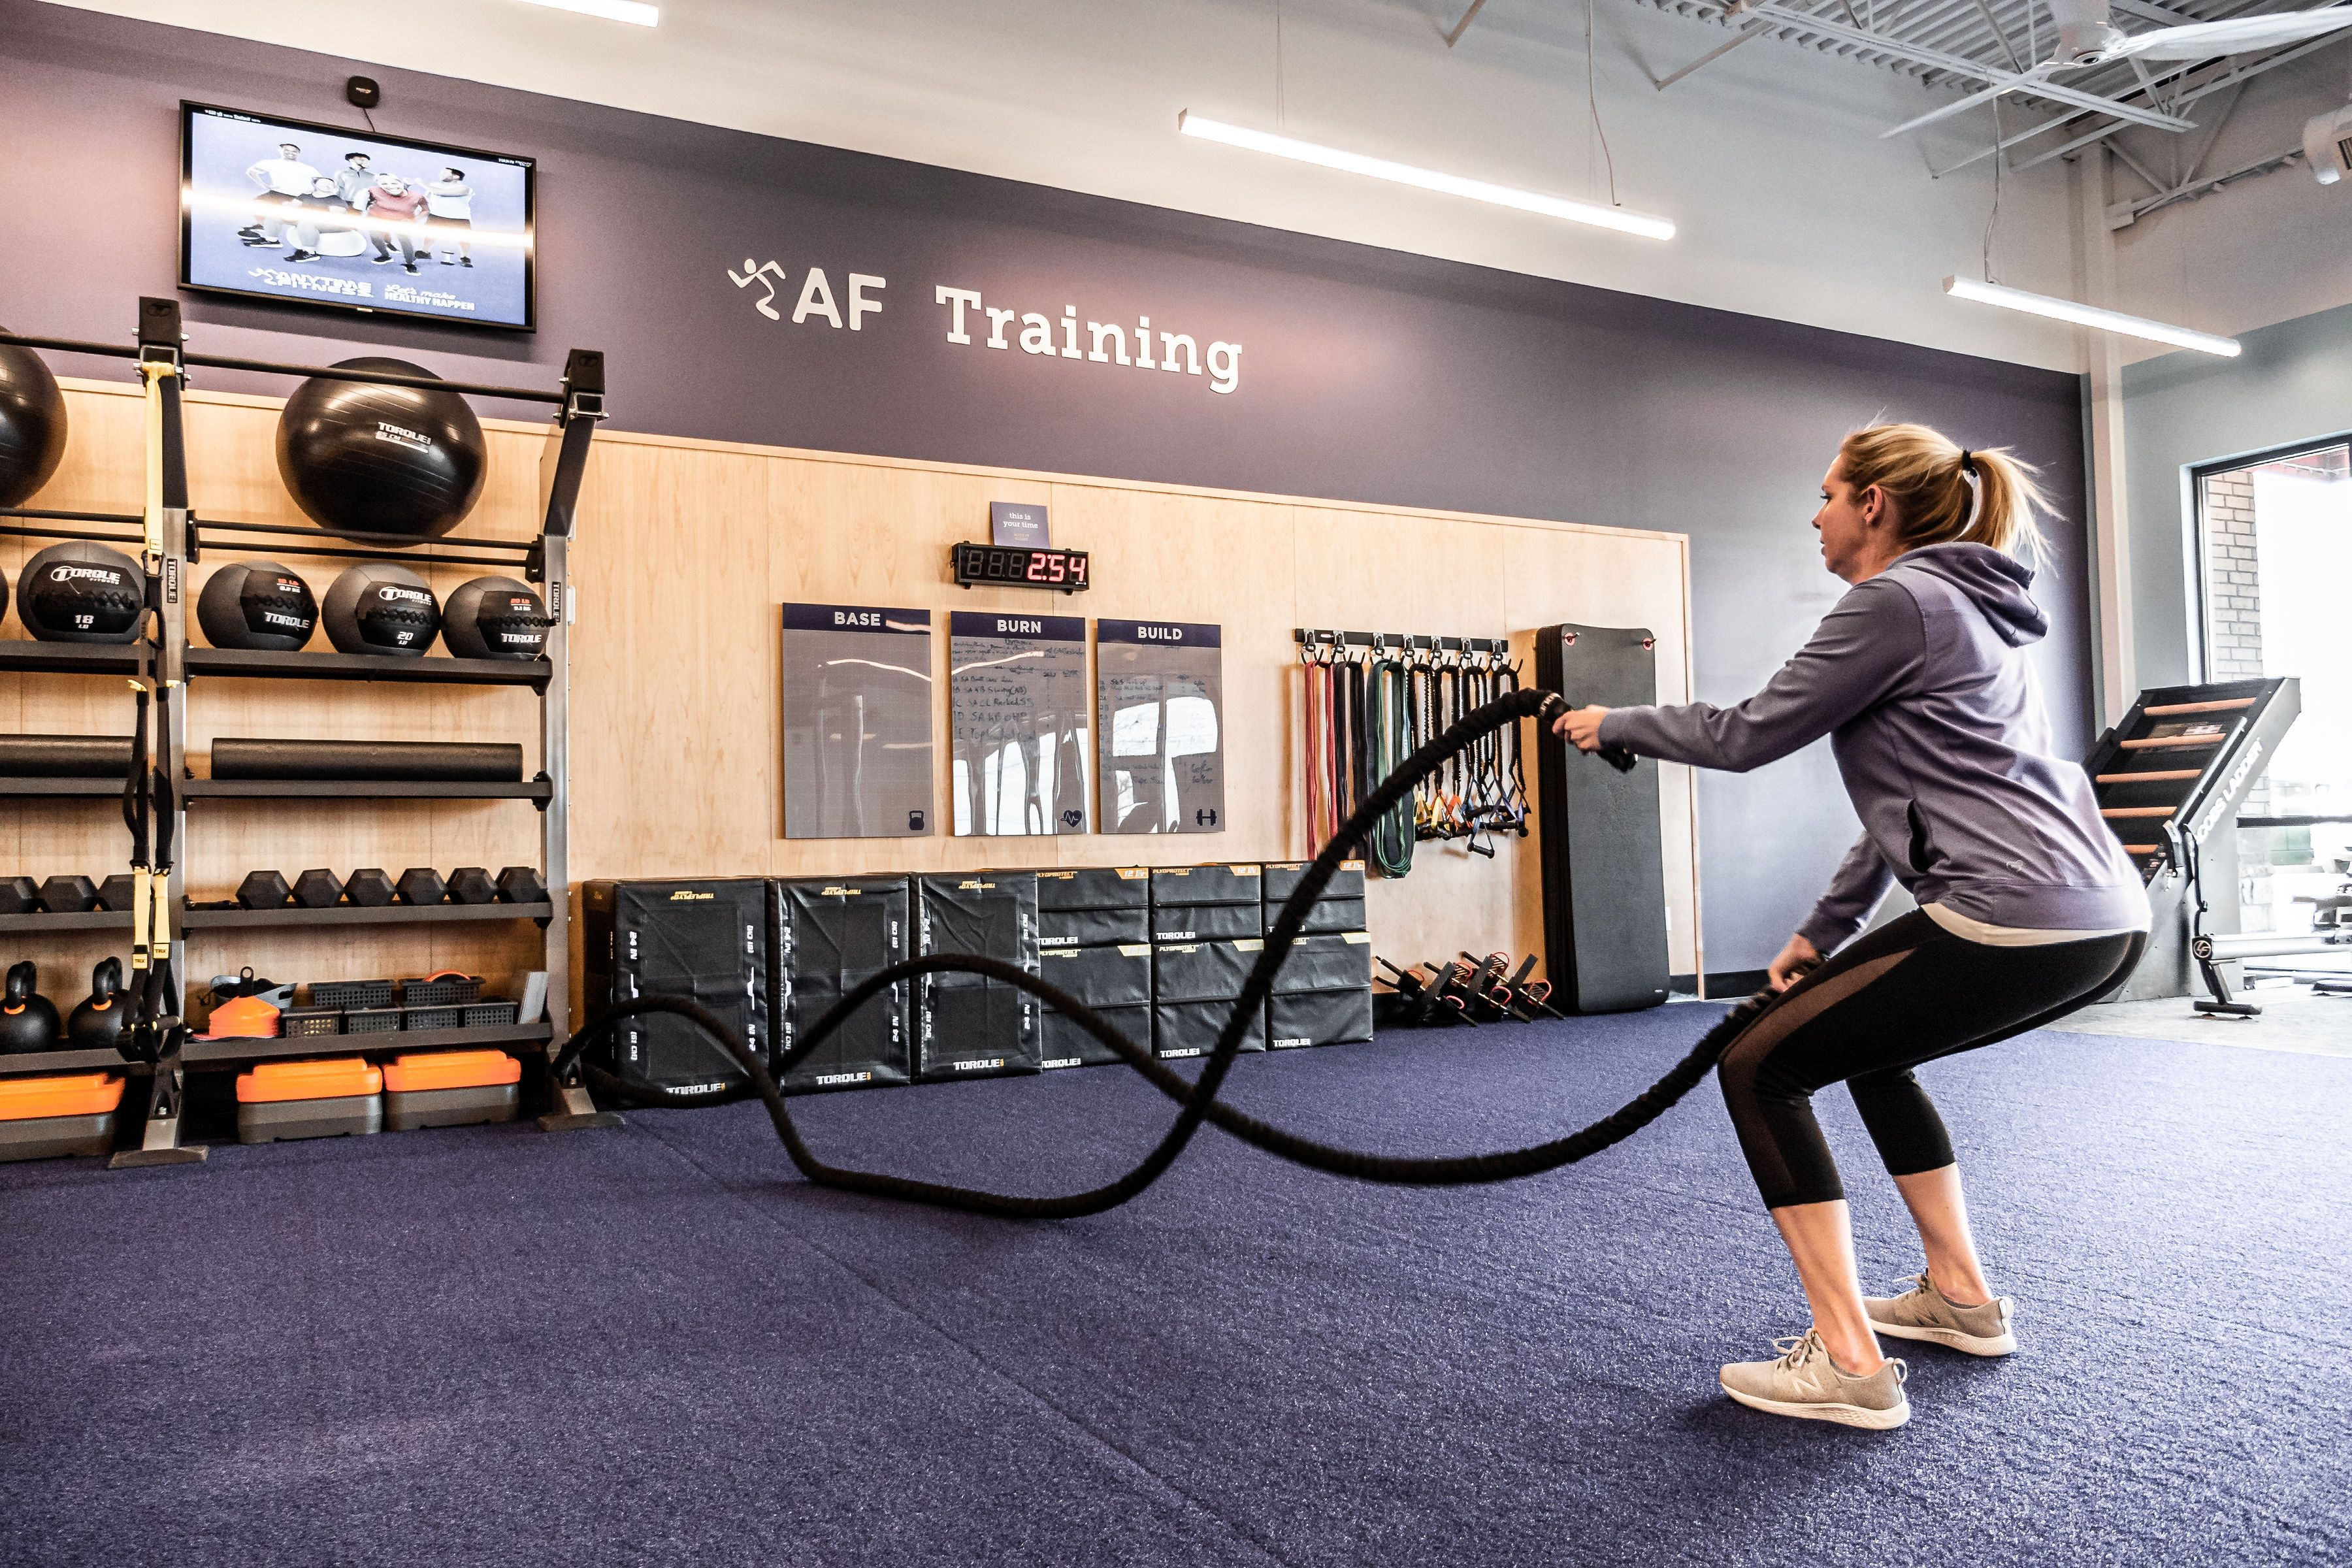 Pin On Functional Training Spaces